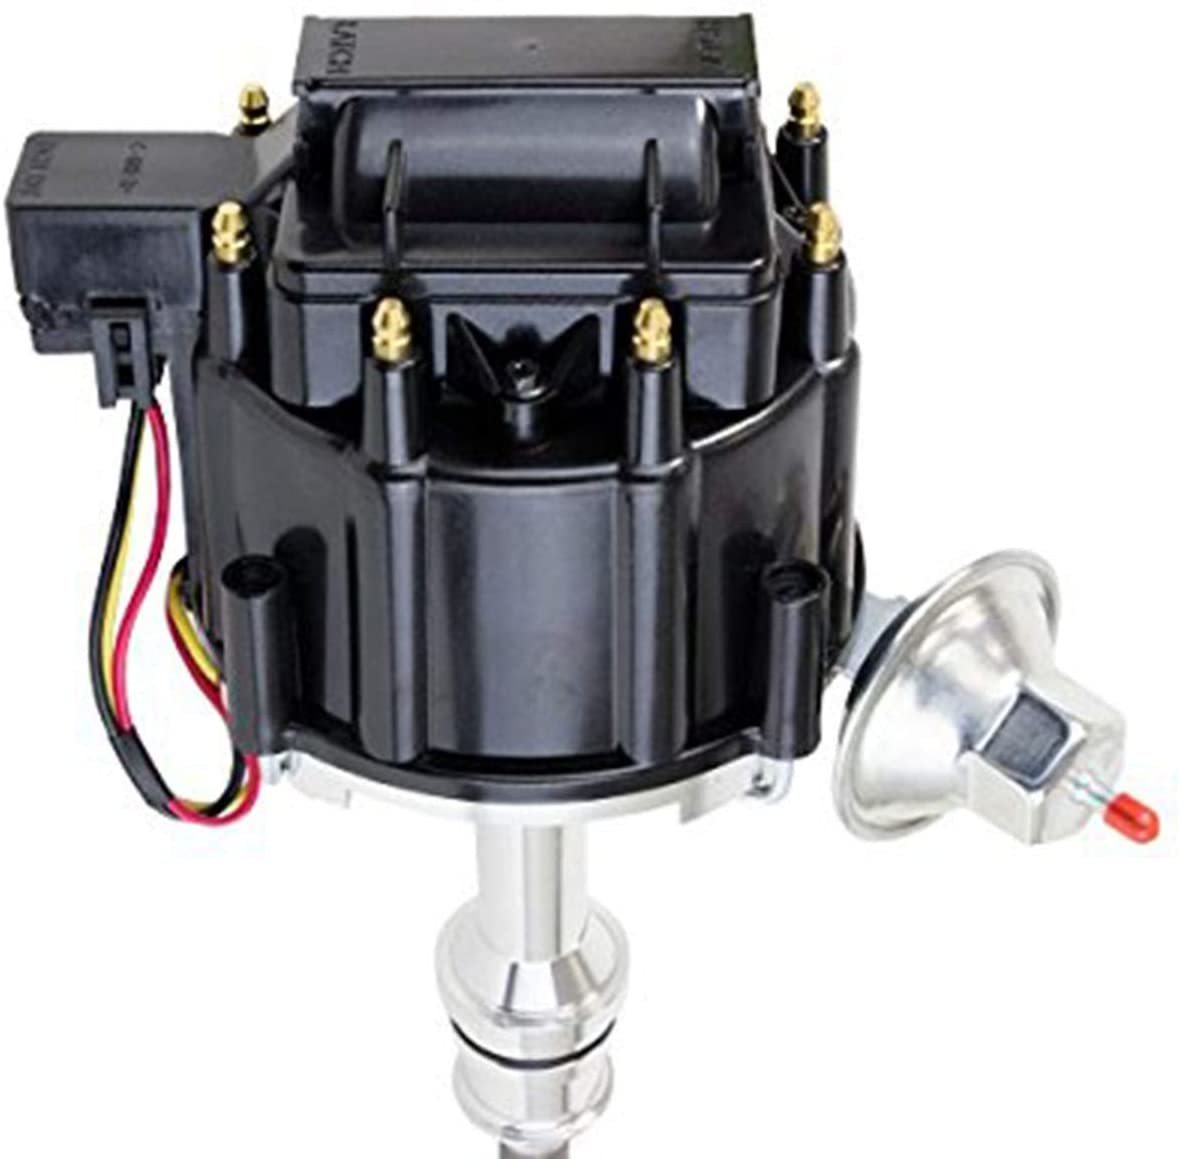 A-Team Performance SBF Ford Small Block 351W Windsor HEI Ignition Black Cap Distributor 65K Coil